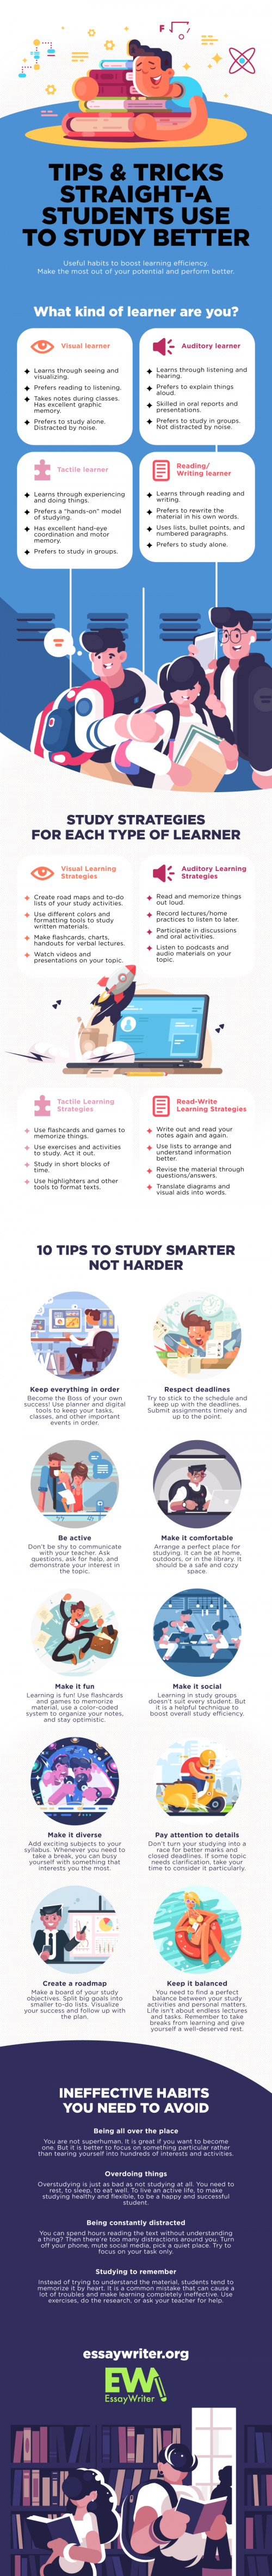 How To Become A Straight-A Student https://essaywriter.org - Tips and tricks straight-a students use to study better. A Real Writer Is Open To Doing Your Essay For A Low Price! We deliver all your orders on time. Also, you'll be pleased to know that 6 out of 10 essays arrive before the deadline for free. All deadlines are met! essaywriter.org, essaywriter, essay writer org,